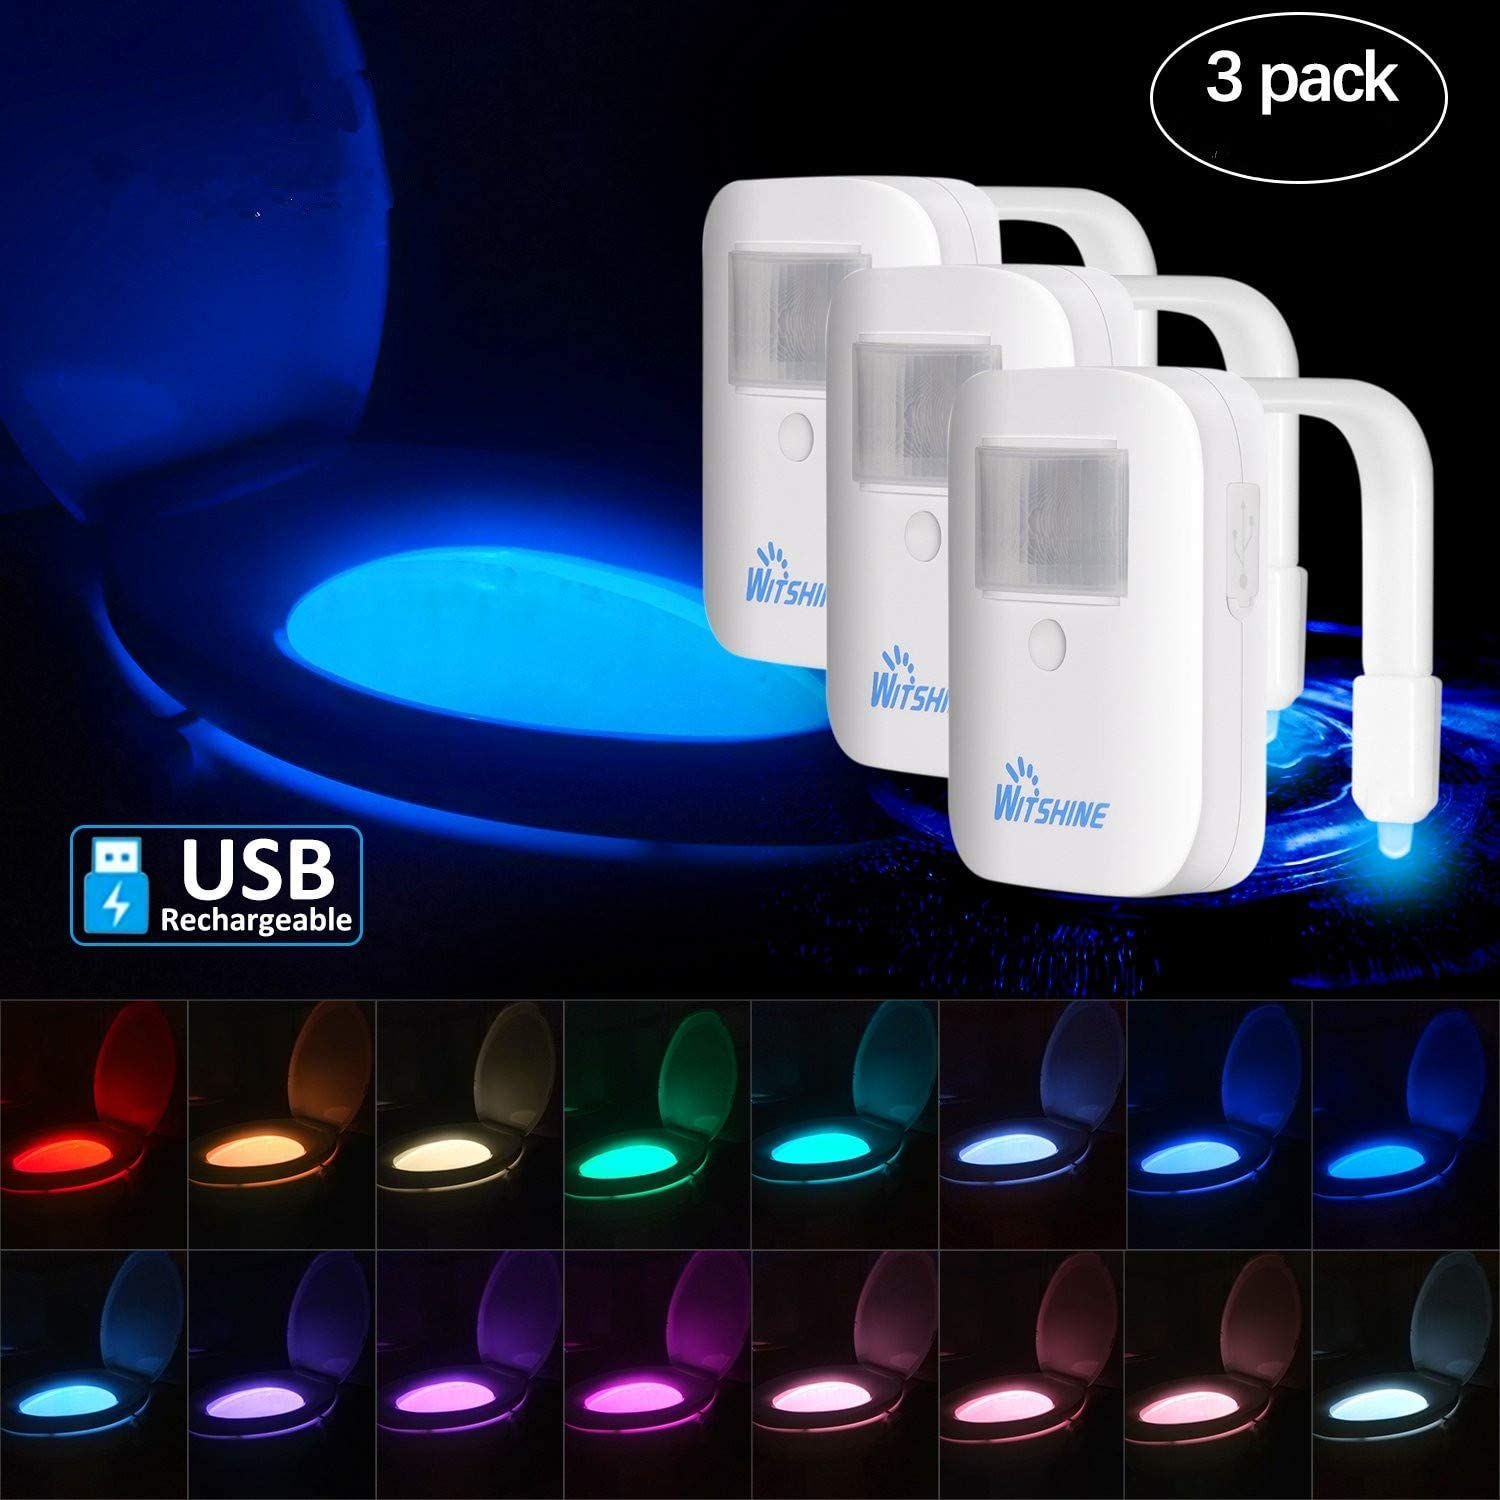 Witshine Rechargeable Toilet Bowl Night Light,16-Color Led Motion Sensor Nightlight, Cool Fun Unique Gadget Funny Birthday Gag Gift Idea for Husband Men Dad Mom Him Kids Mother Father Day (3 Pack)